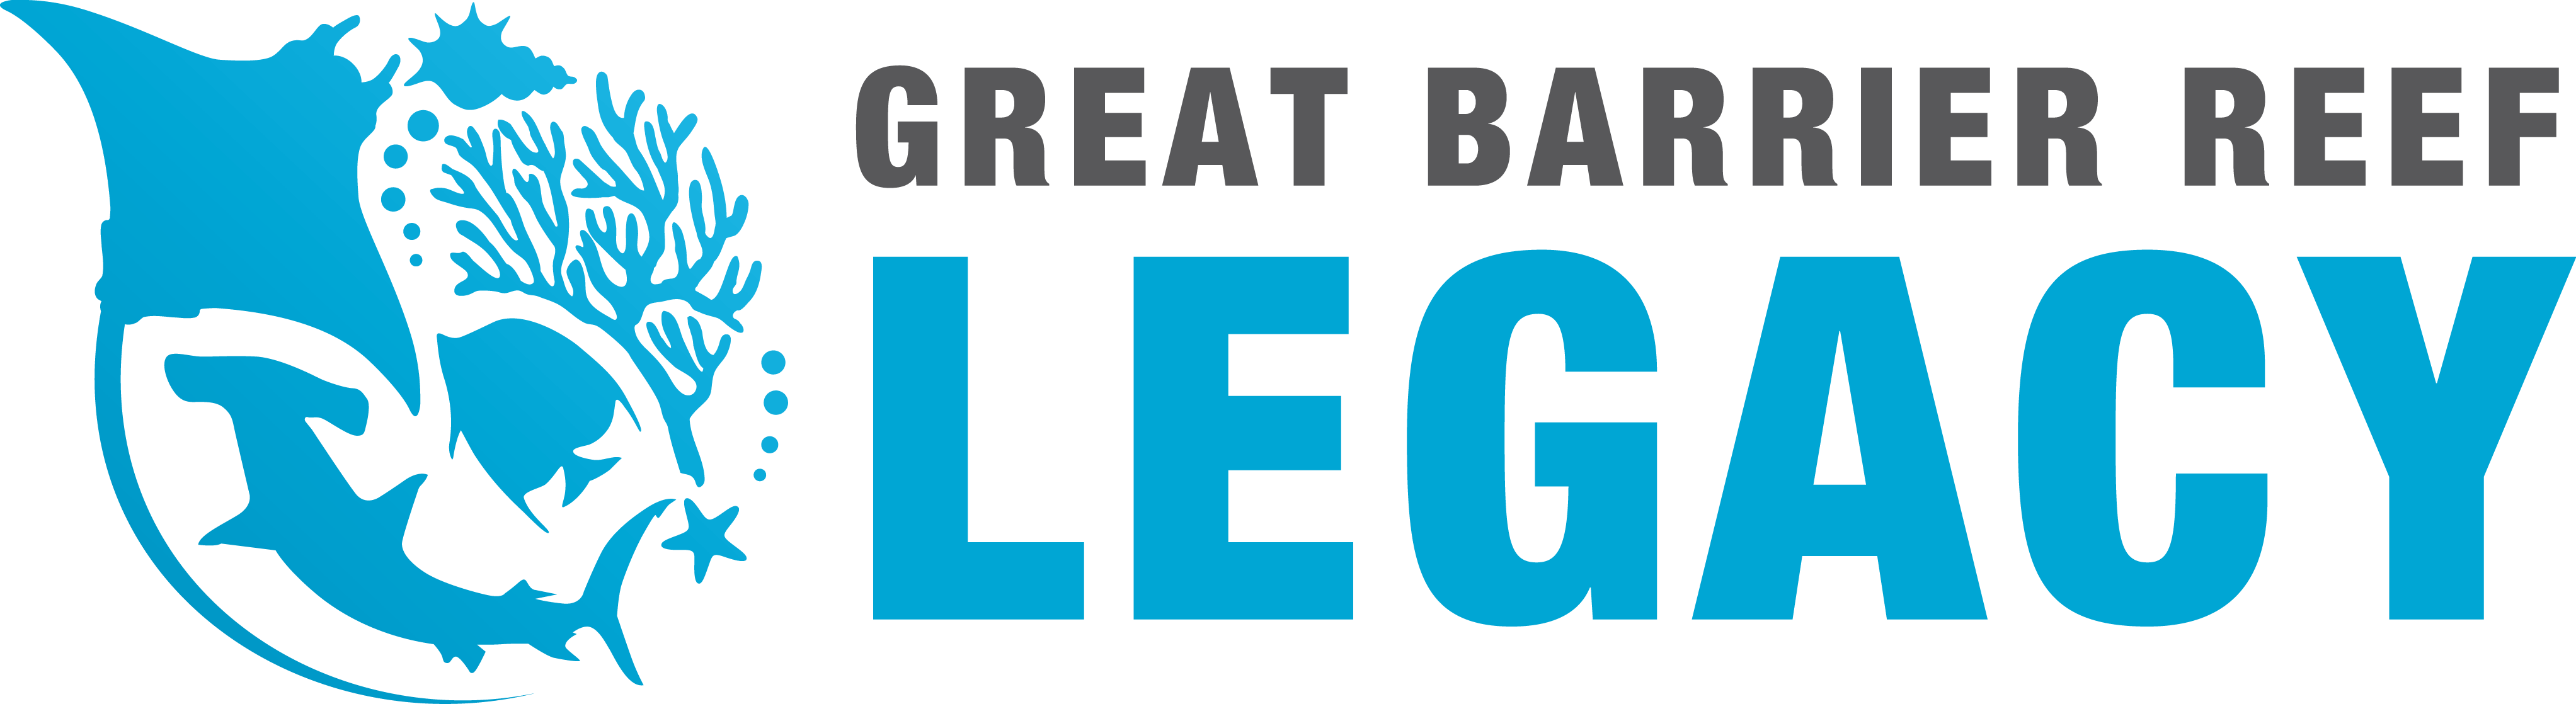 Great barrier reef logos. Coral clipart coral bleaching